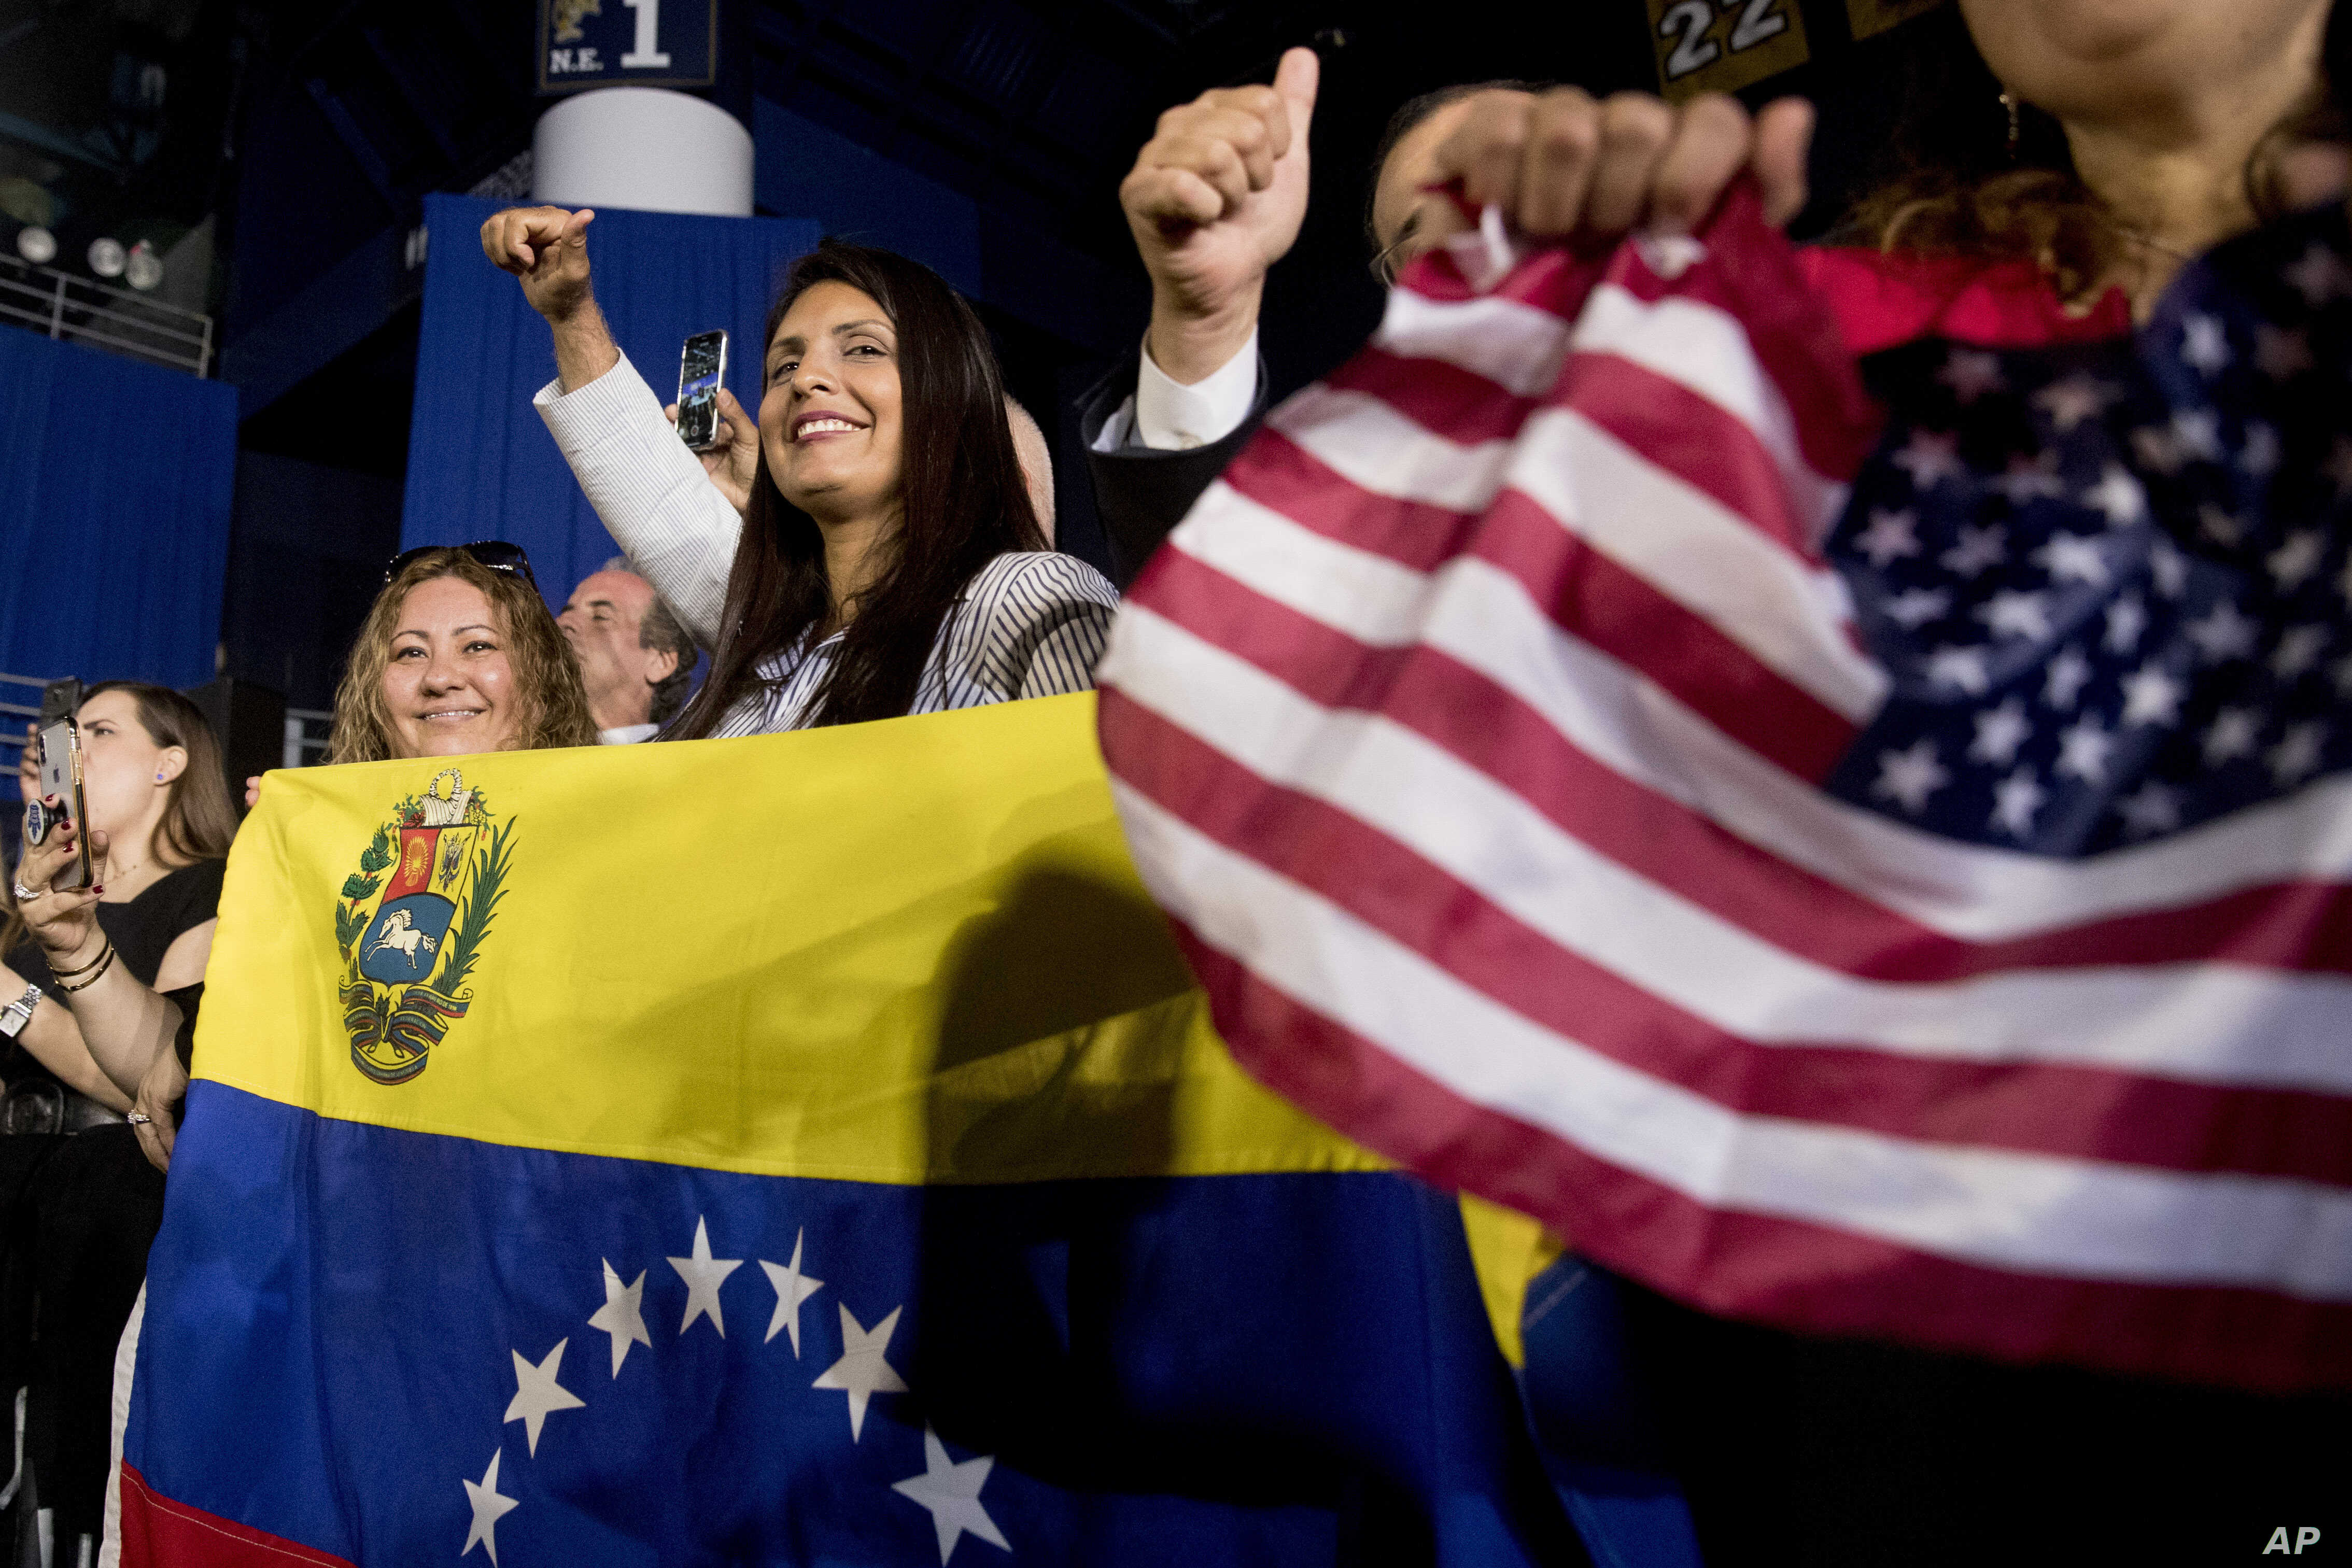 Members of the audience wave Venezuelan and American flags as President Donald Trump speaks to a Venezuelan American community at Florida Ocean Bank Convocation Center at Florida International University in Miami, Feb. 18, 2019.